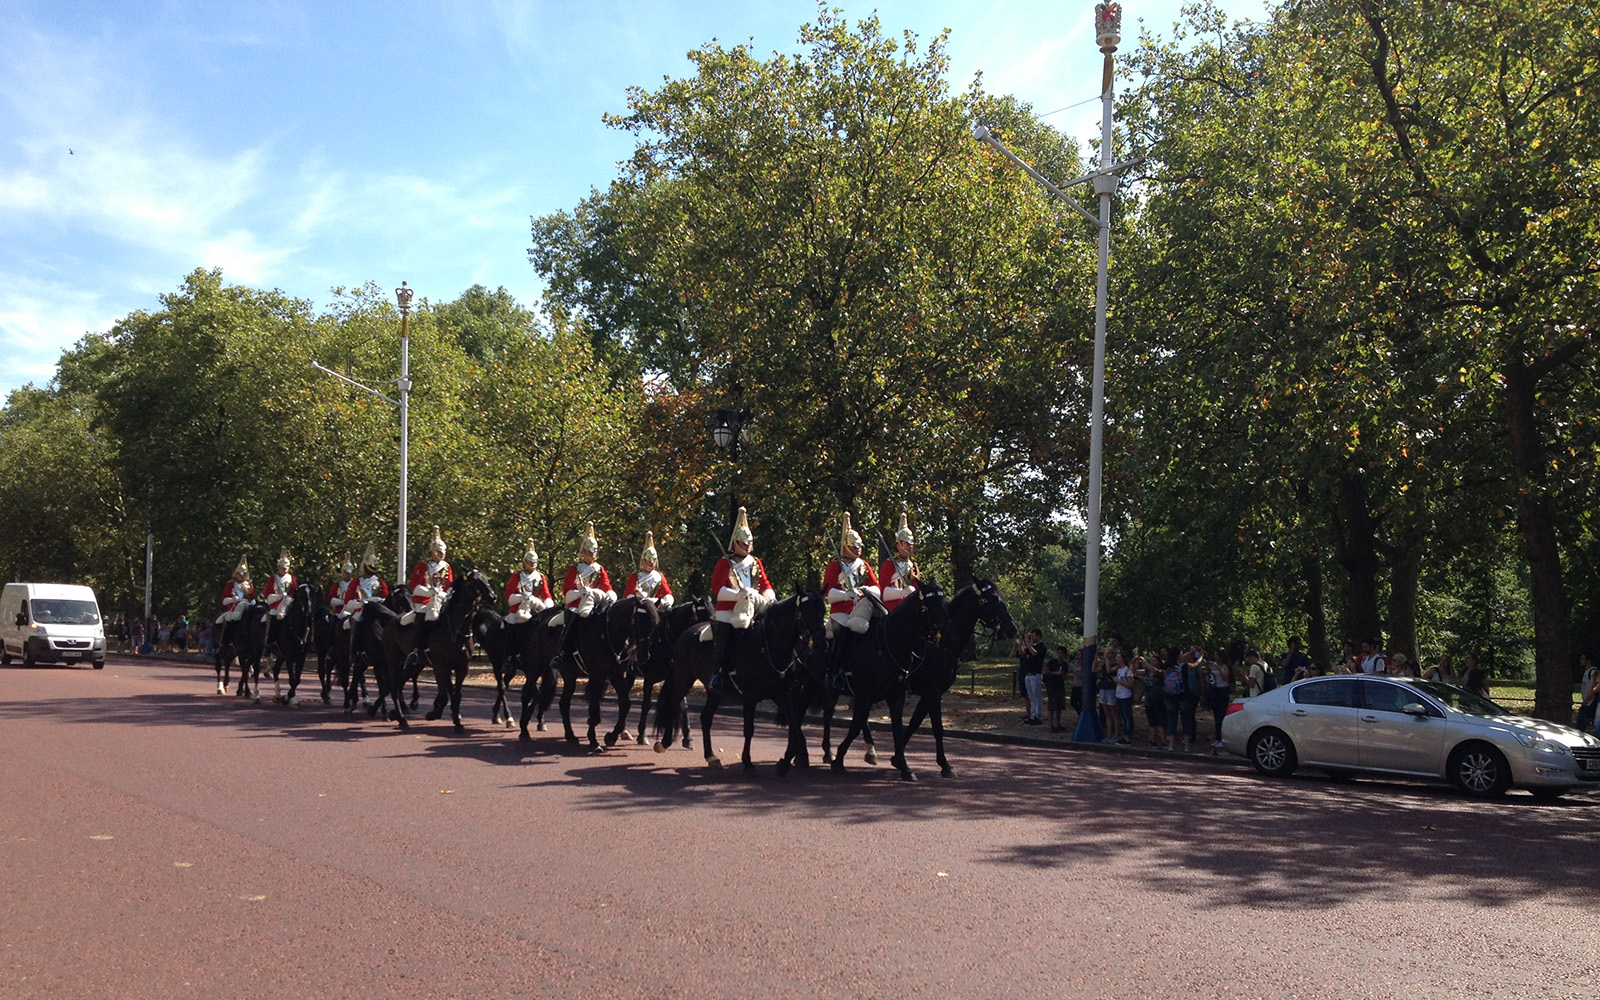 Horse Guards Parade on 22 August 2015